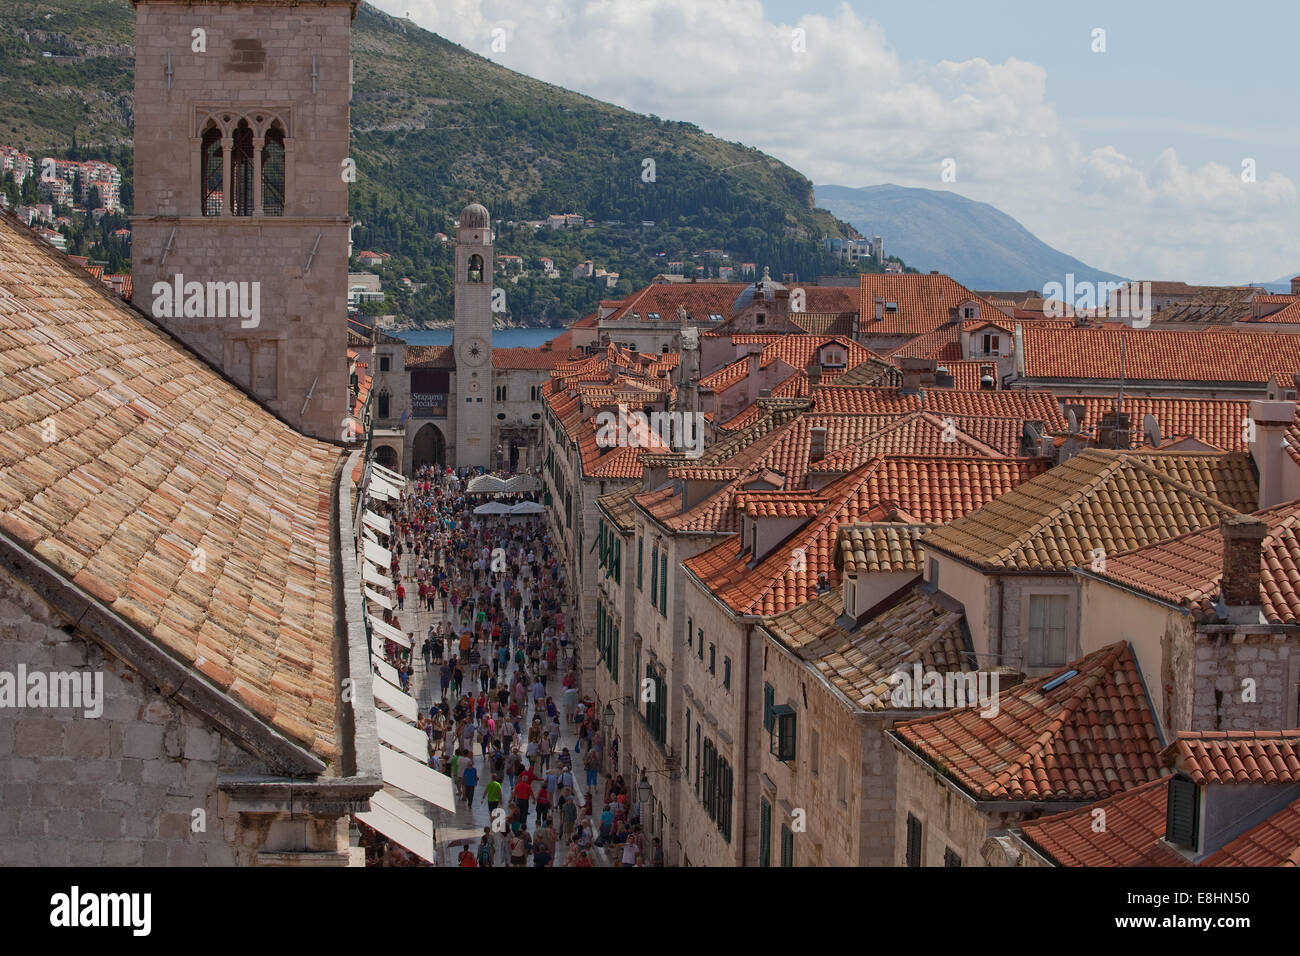 Dubrovnik,in Croatia, once part of the former Yugoslavia,the main pedestrian thoroughfare,throgs wih thousands of - Stock Image